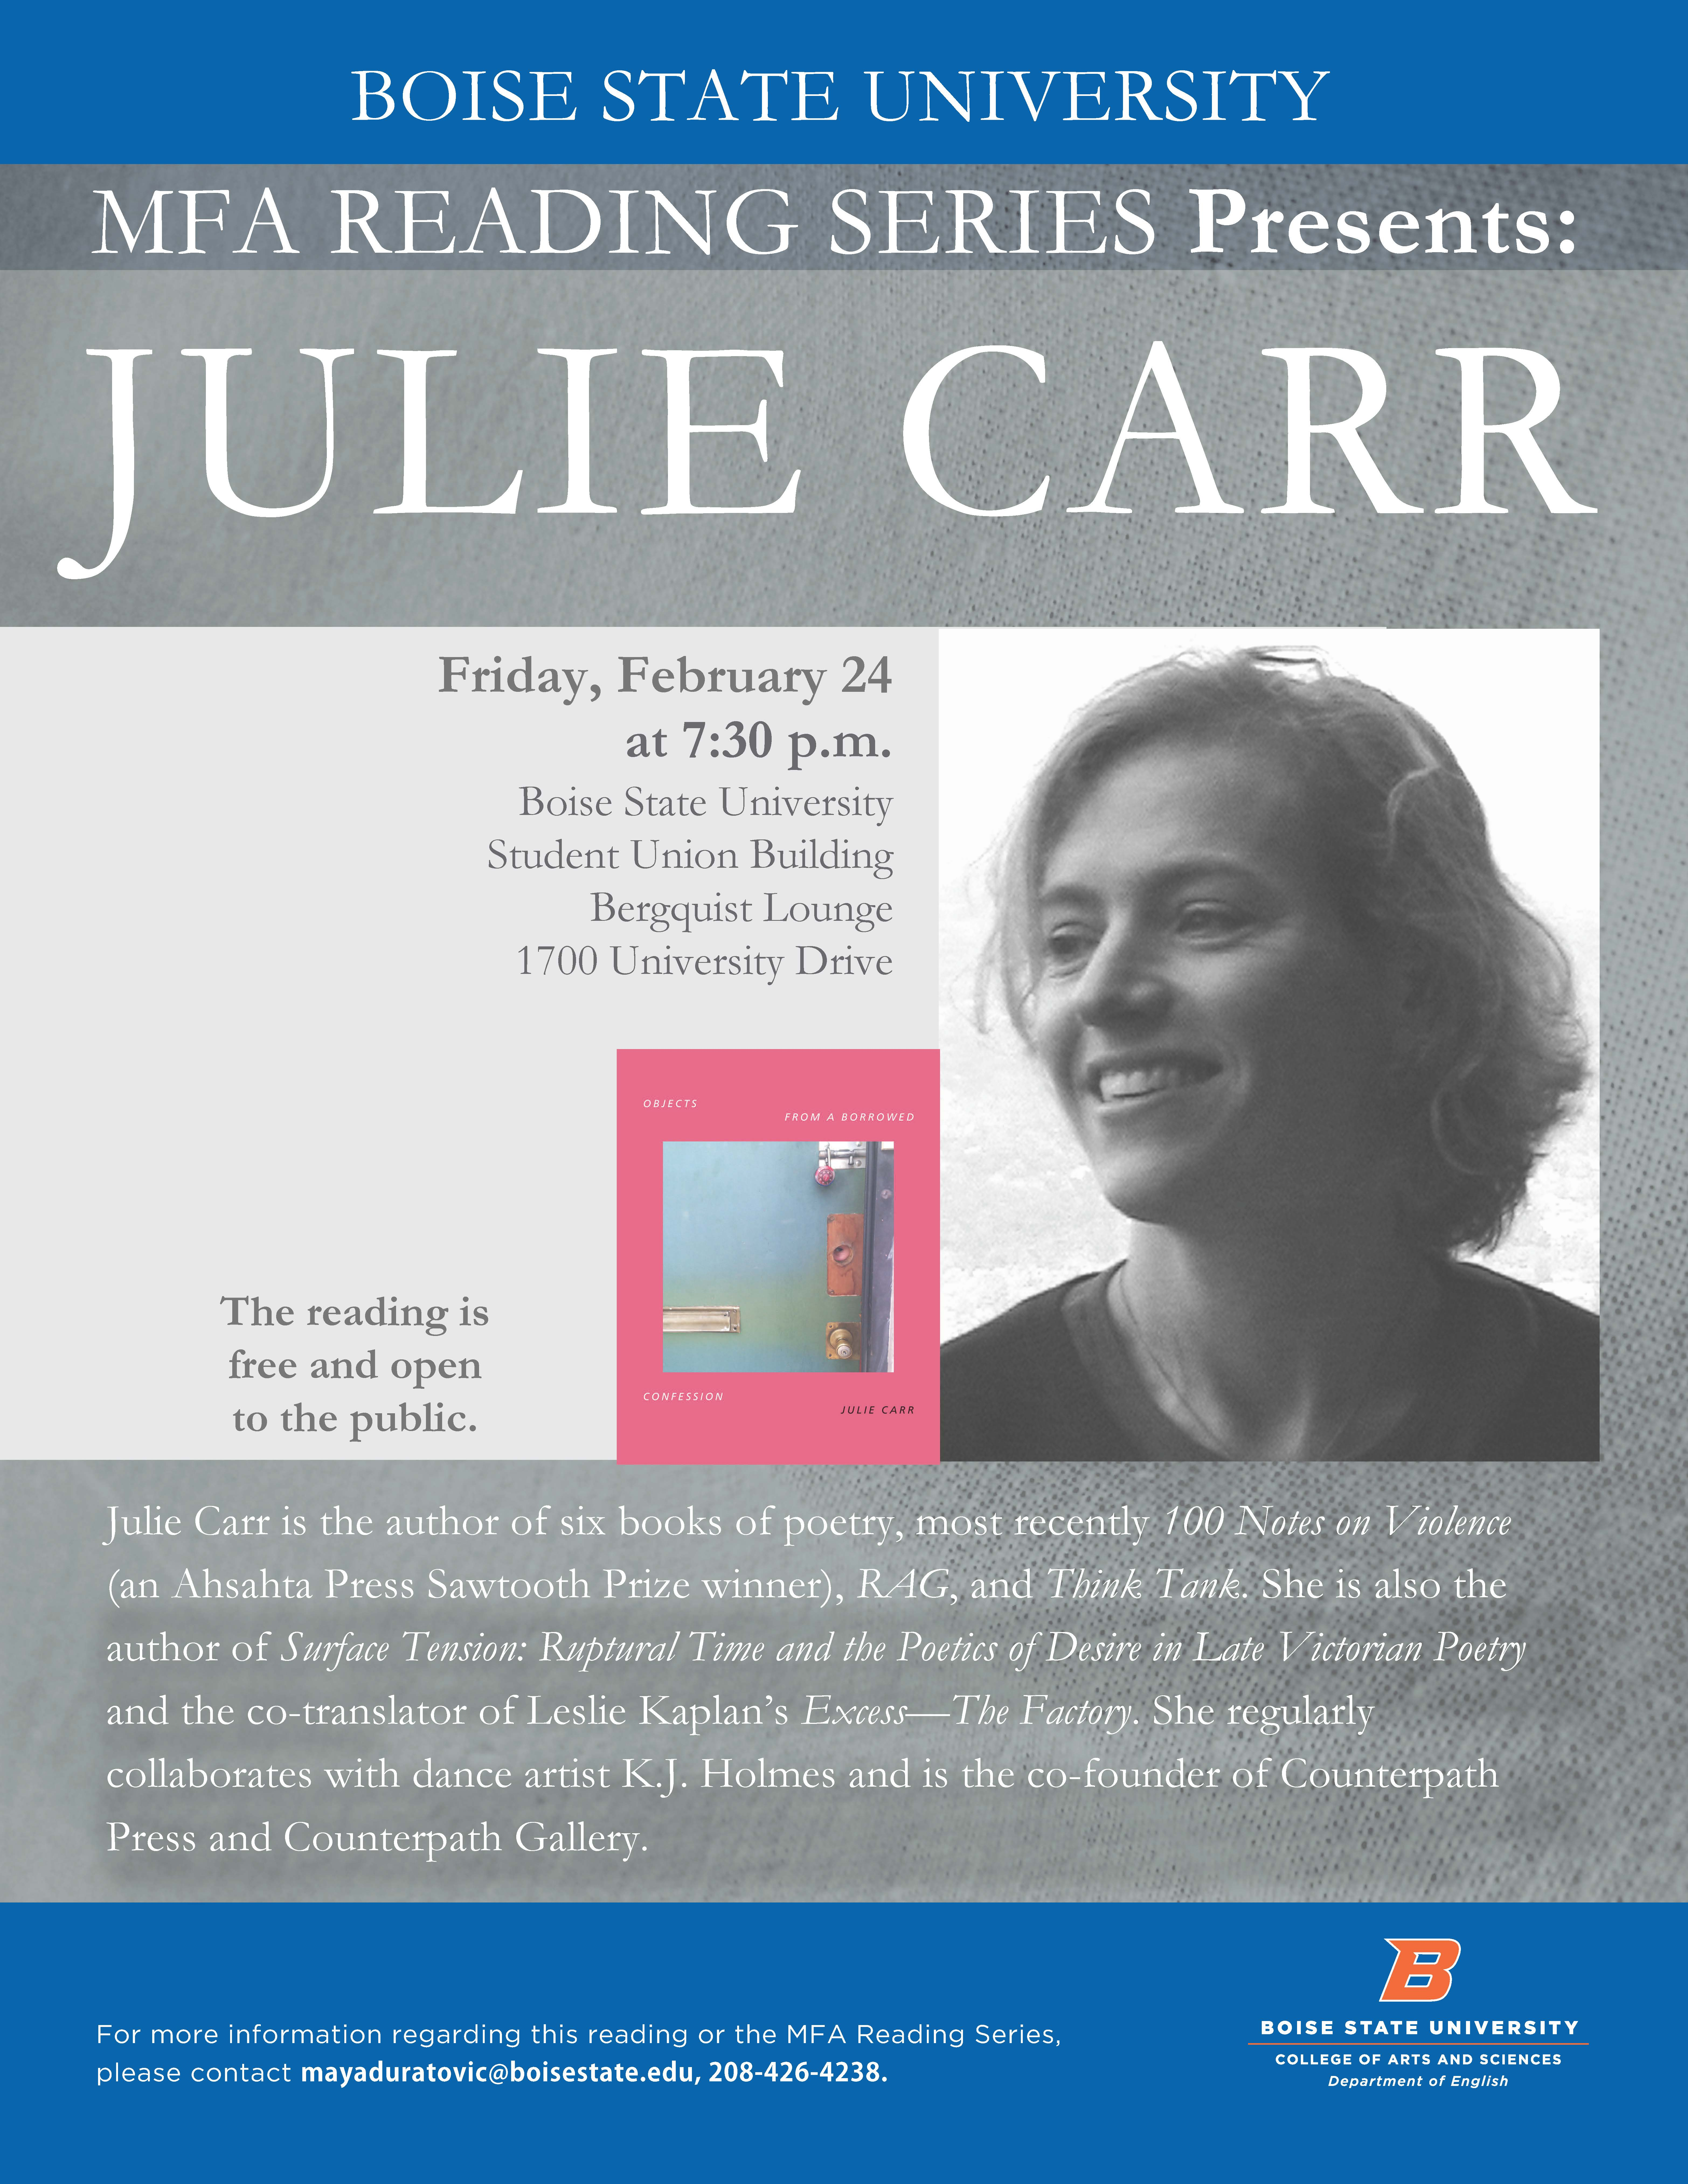 Julie Carr, February 24, 7:30 PM at Boise State University Berquist Lounge